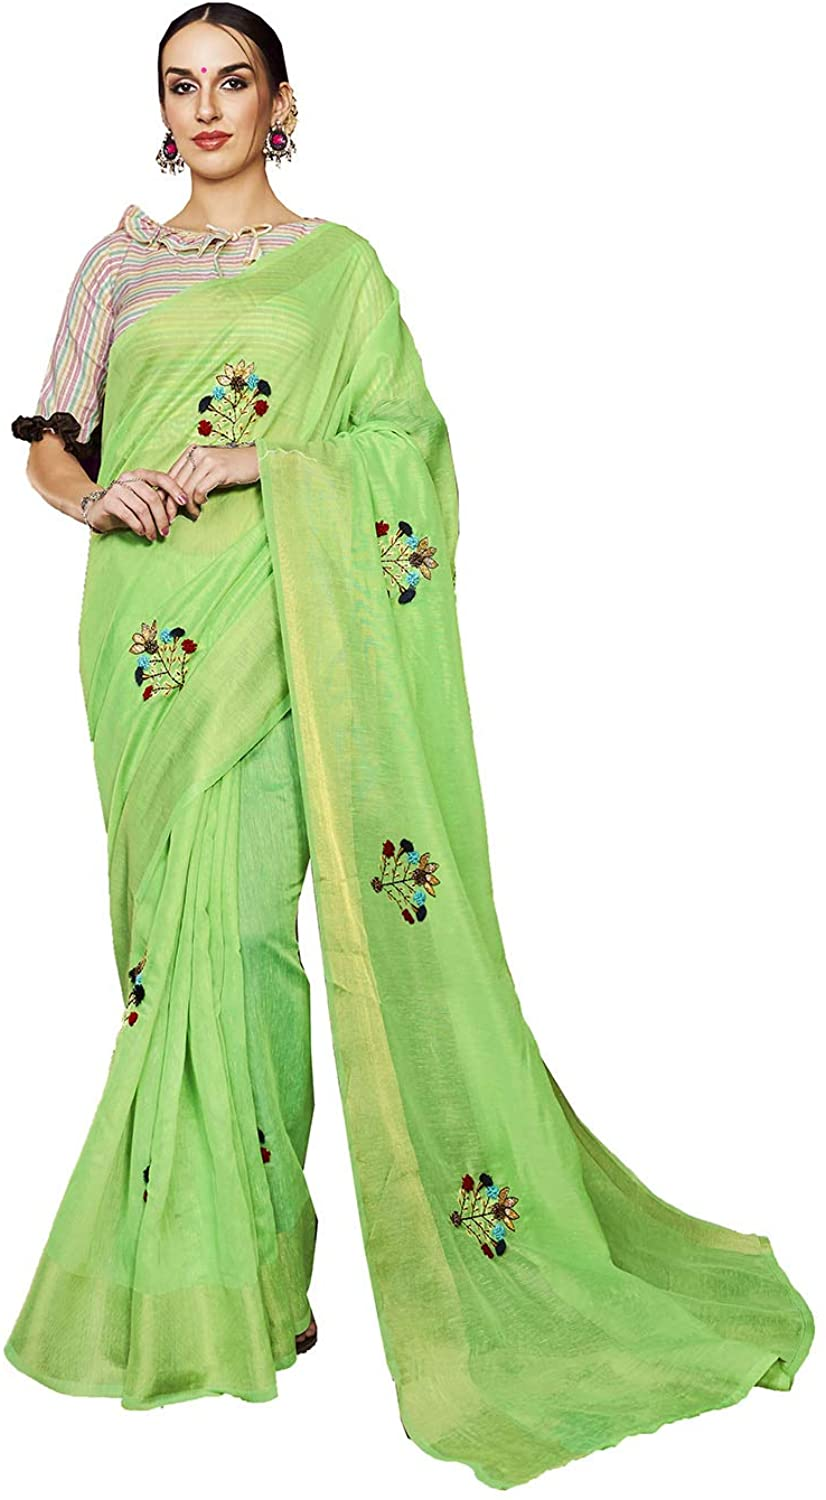 Indian Saree for Women Ethnic Sari Parrot Green Linen Sari with Unstitched Blouse. ICW2736-1